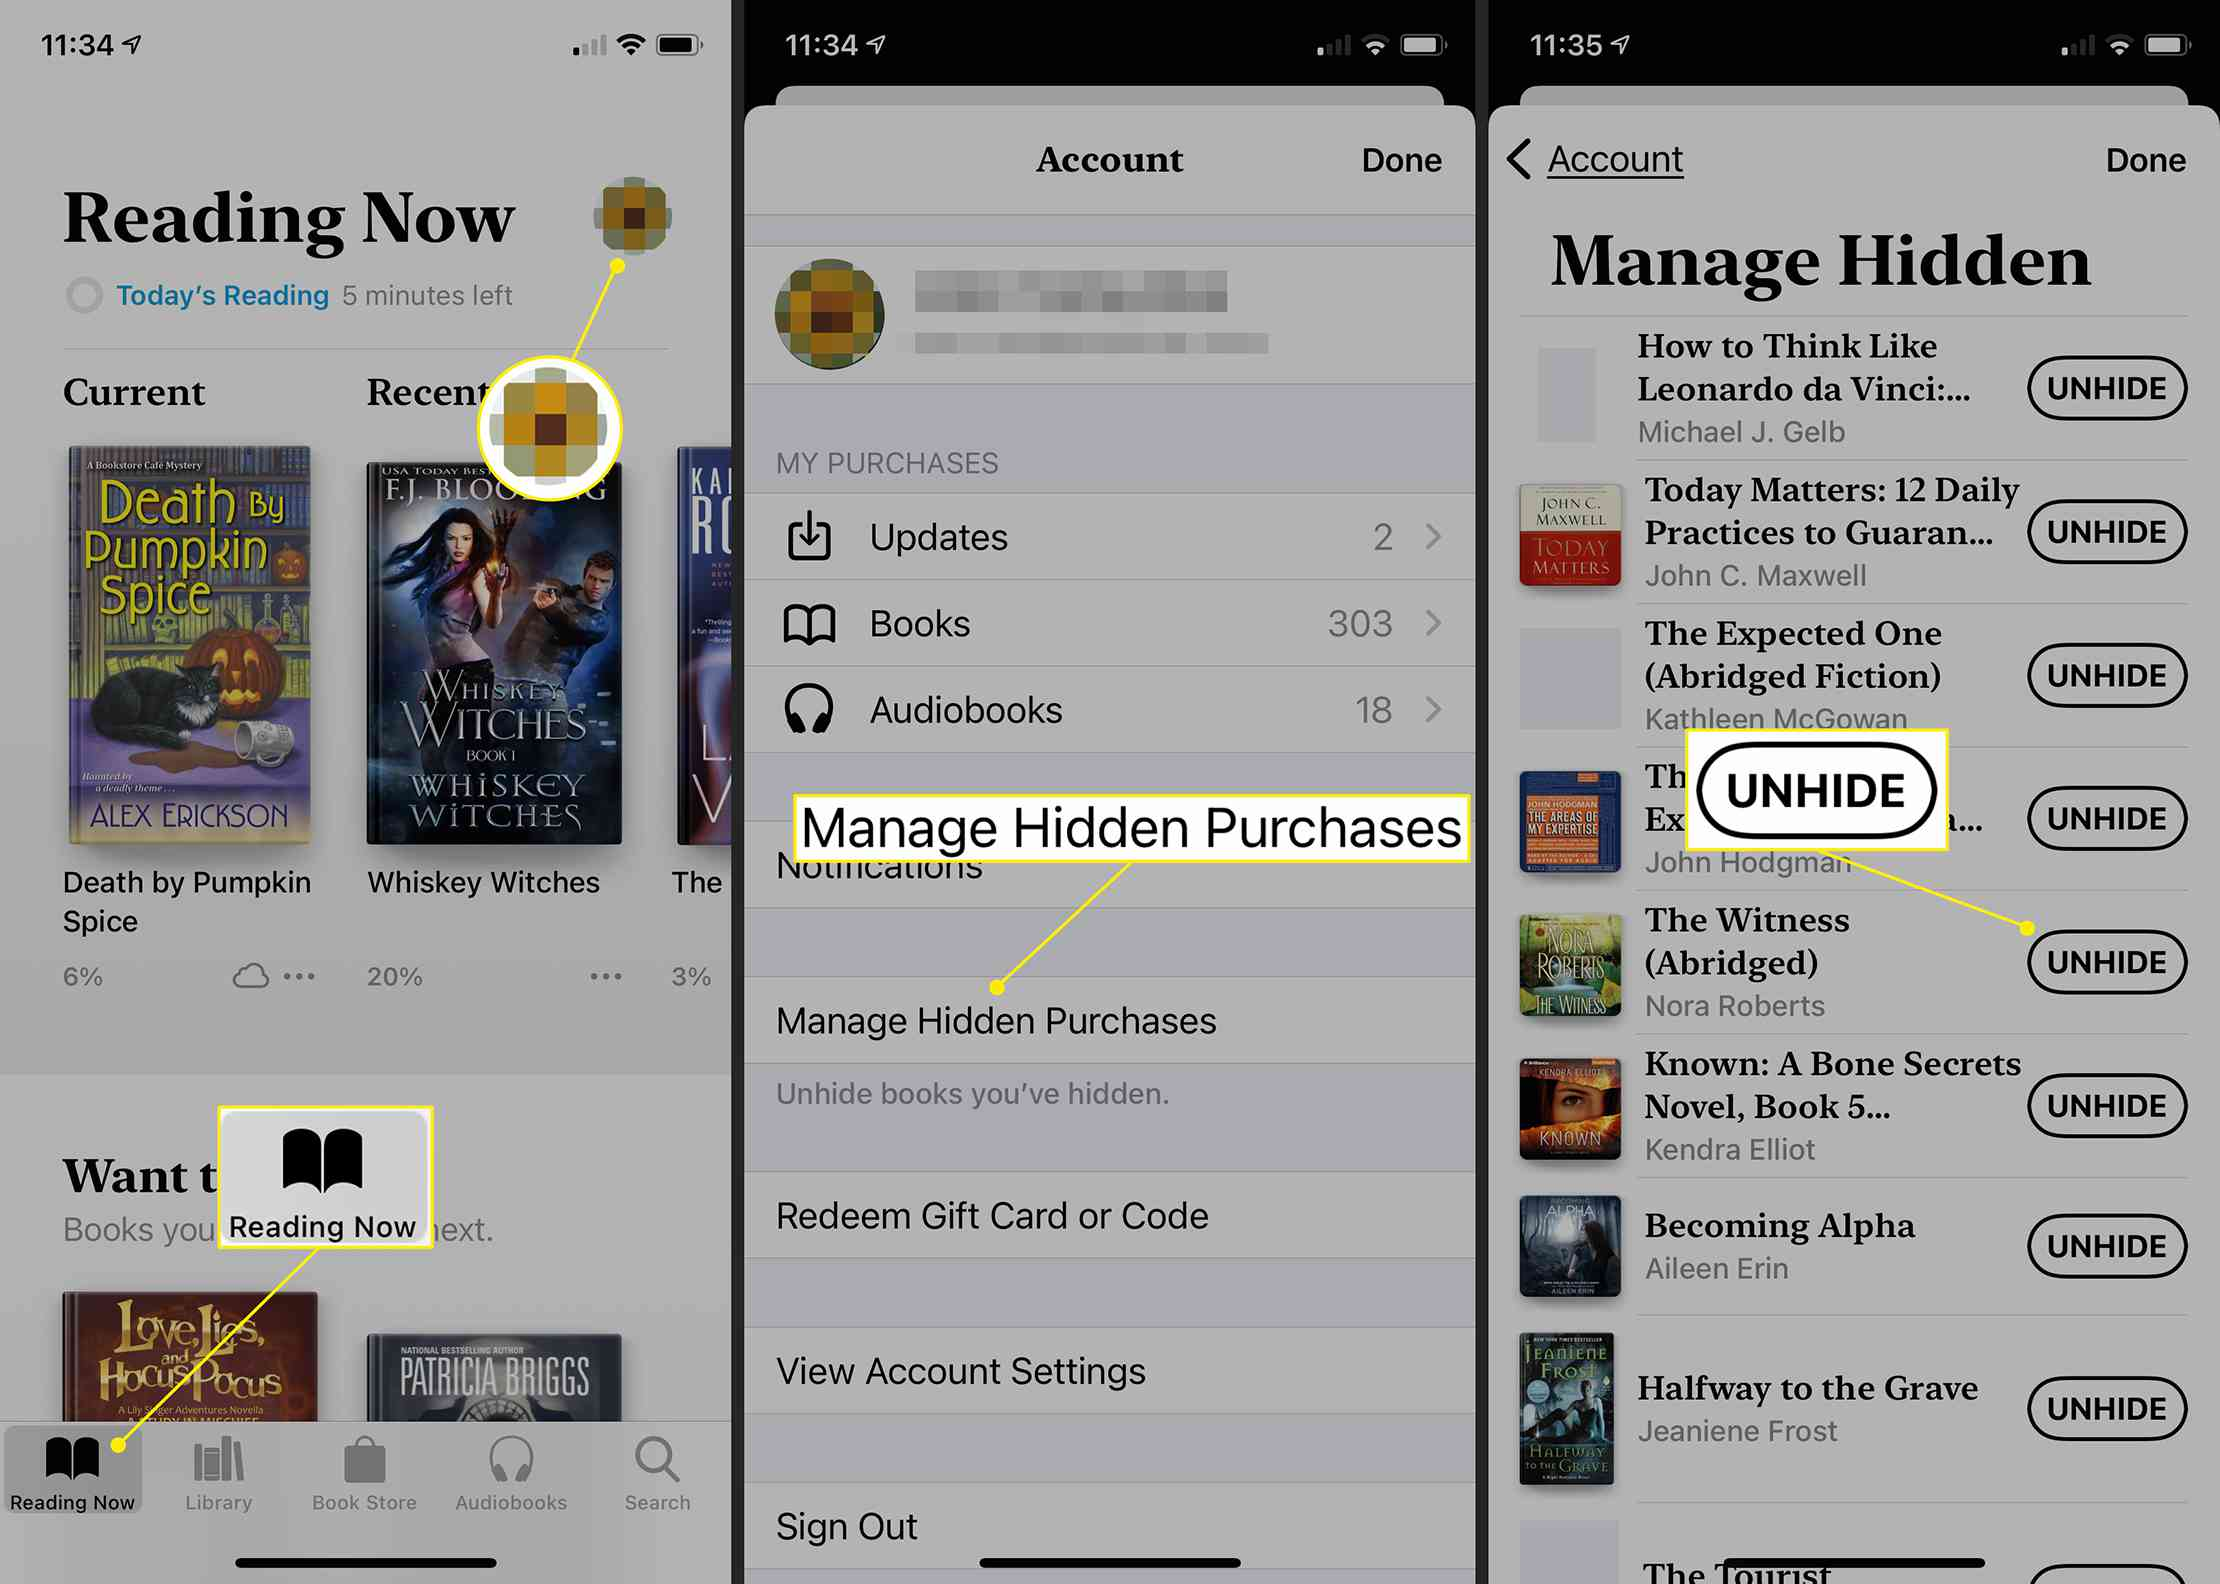 iOS Books app showing path to hidden books